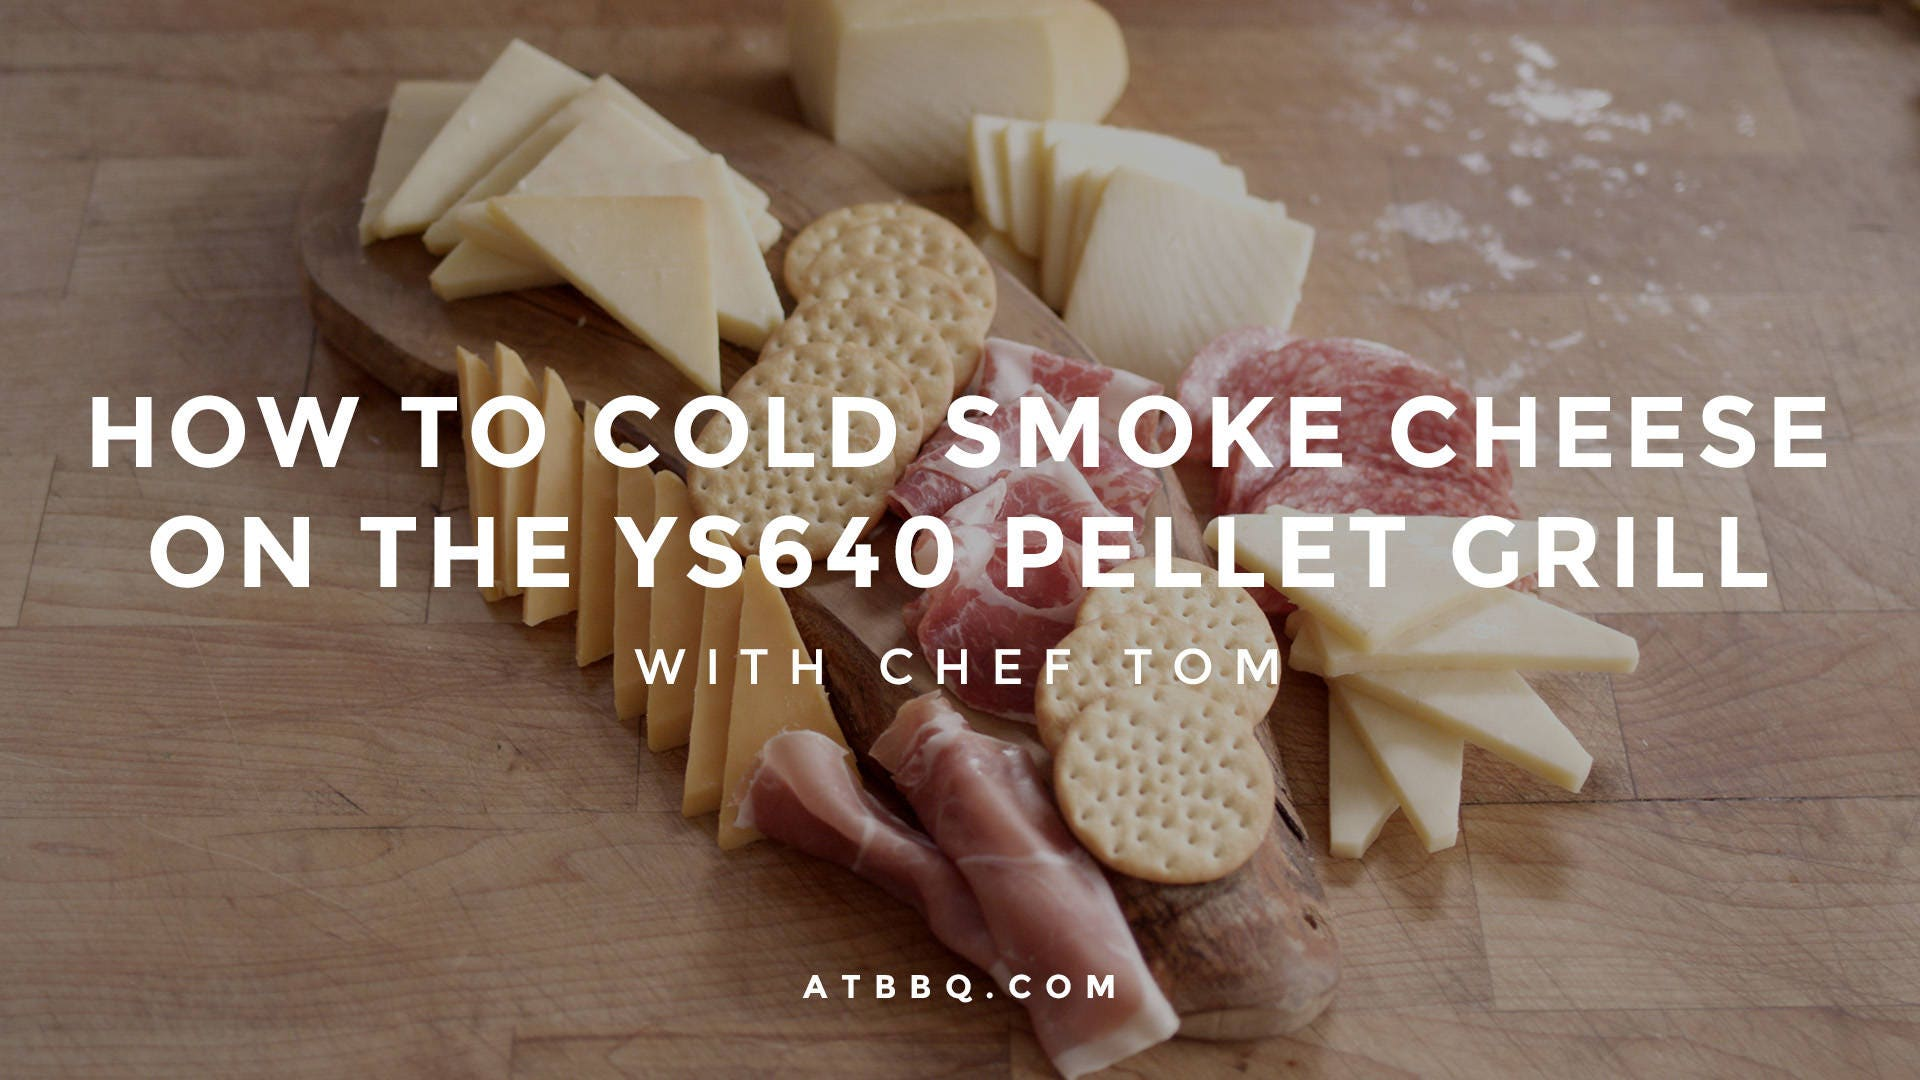 How to Cold Smoke Cheese on the YS640 Pellet Grill